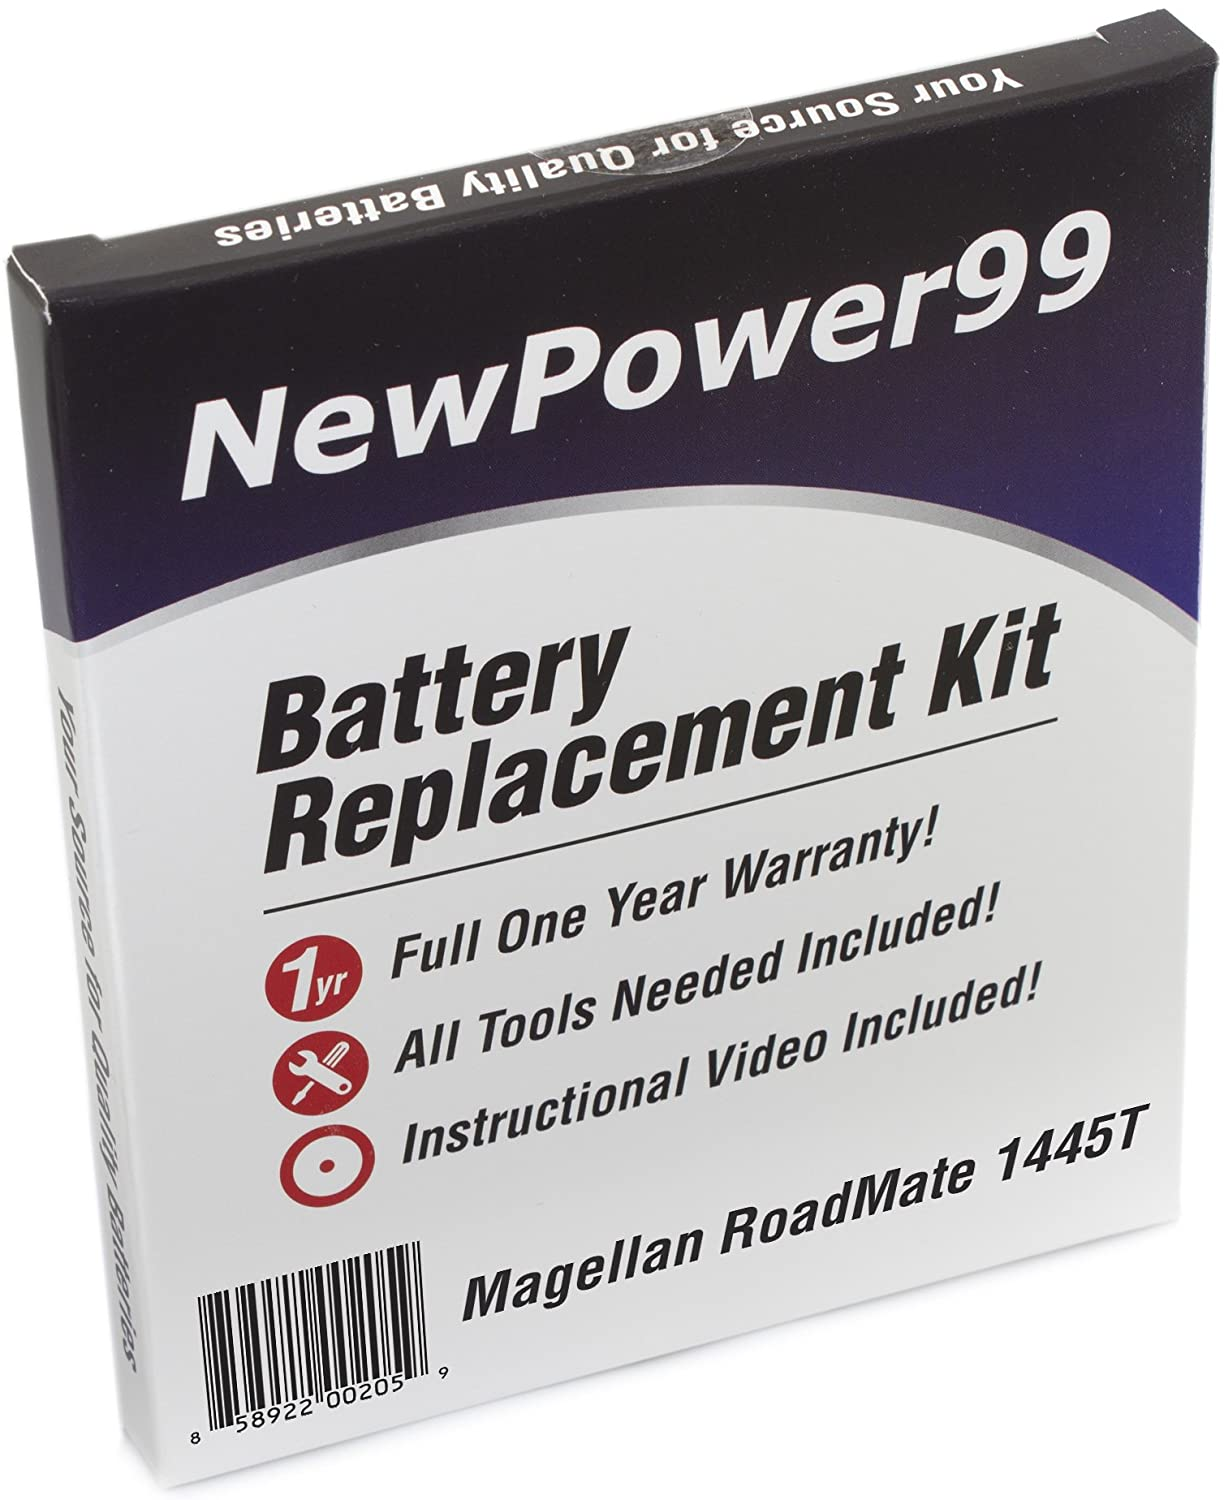 NewPower99 Battery Replacement Kit with Battery, Video Instructions and Tools for Magellan RoadMate 1445T